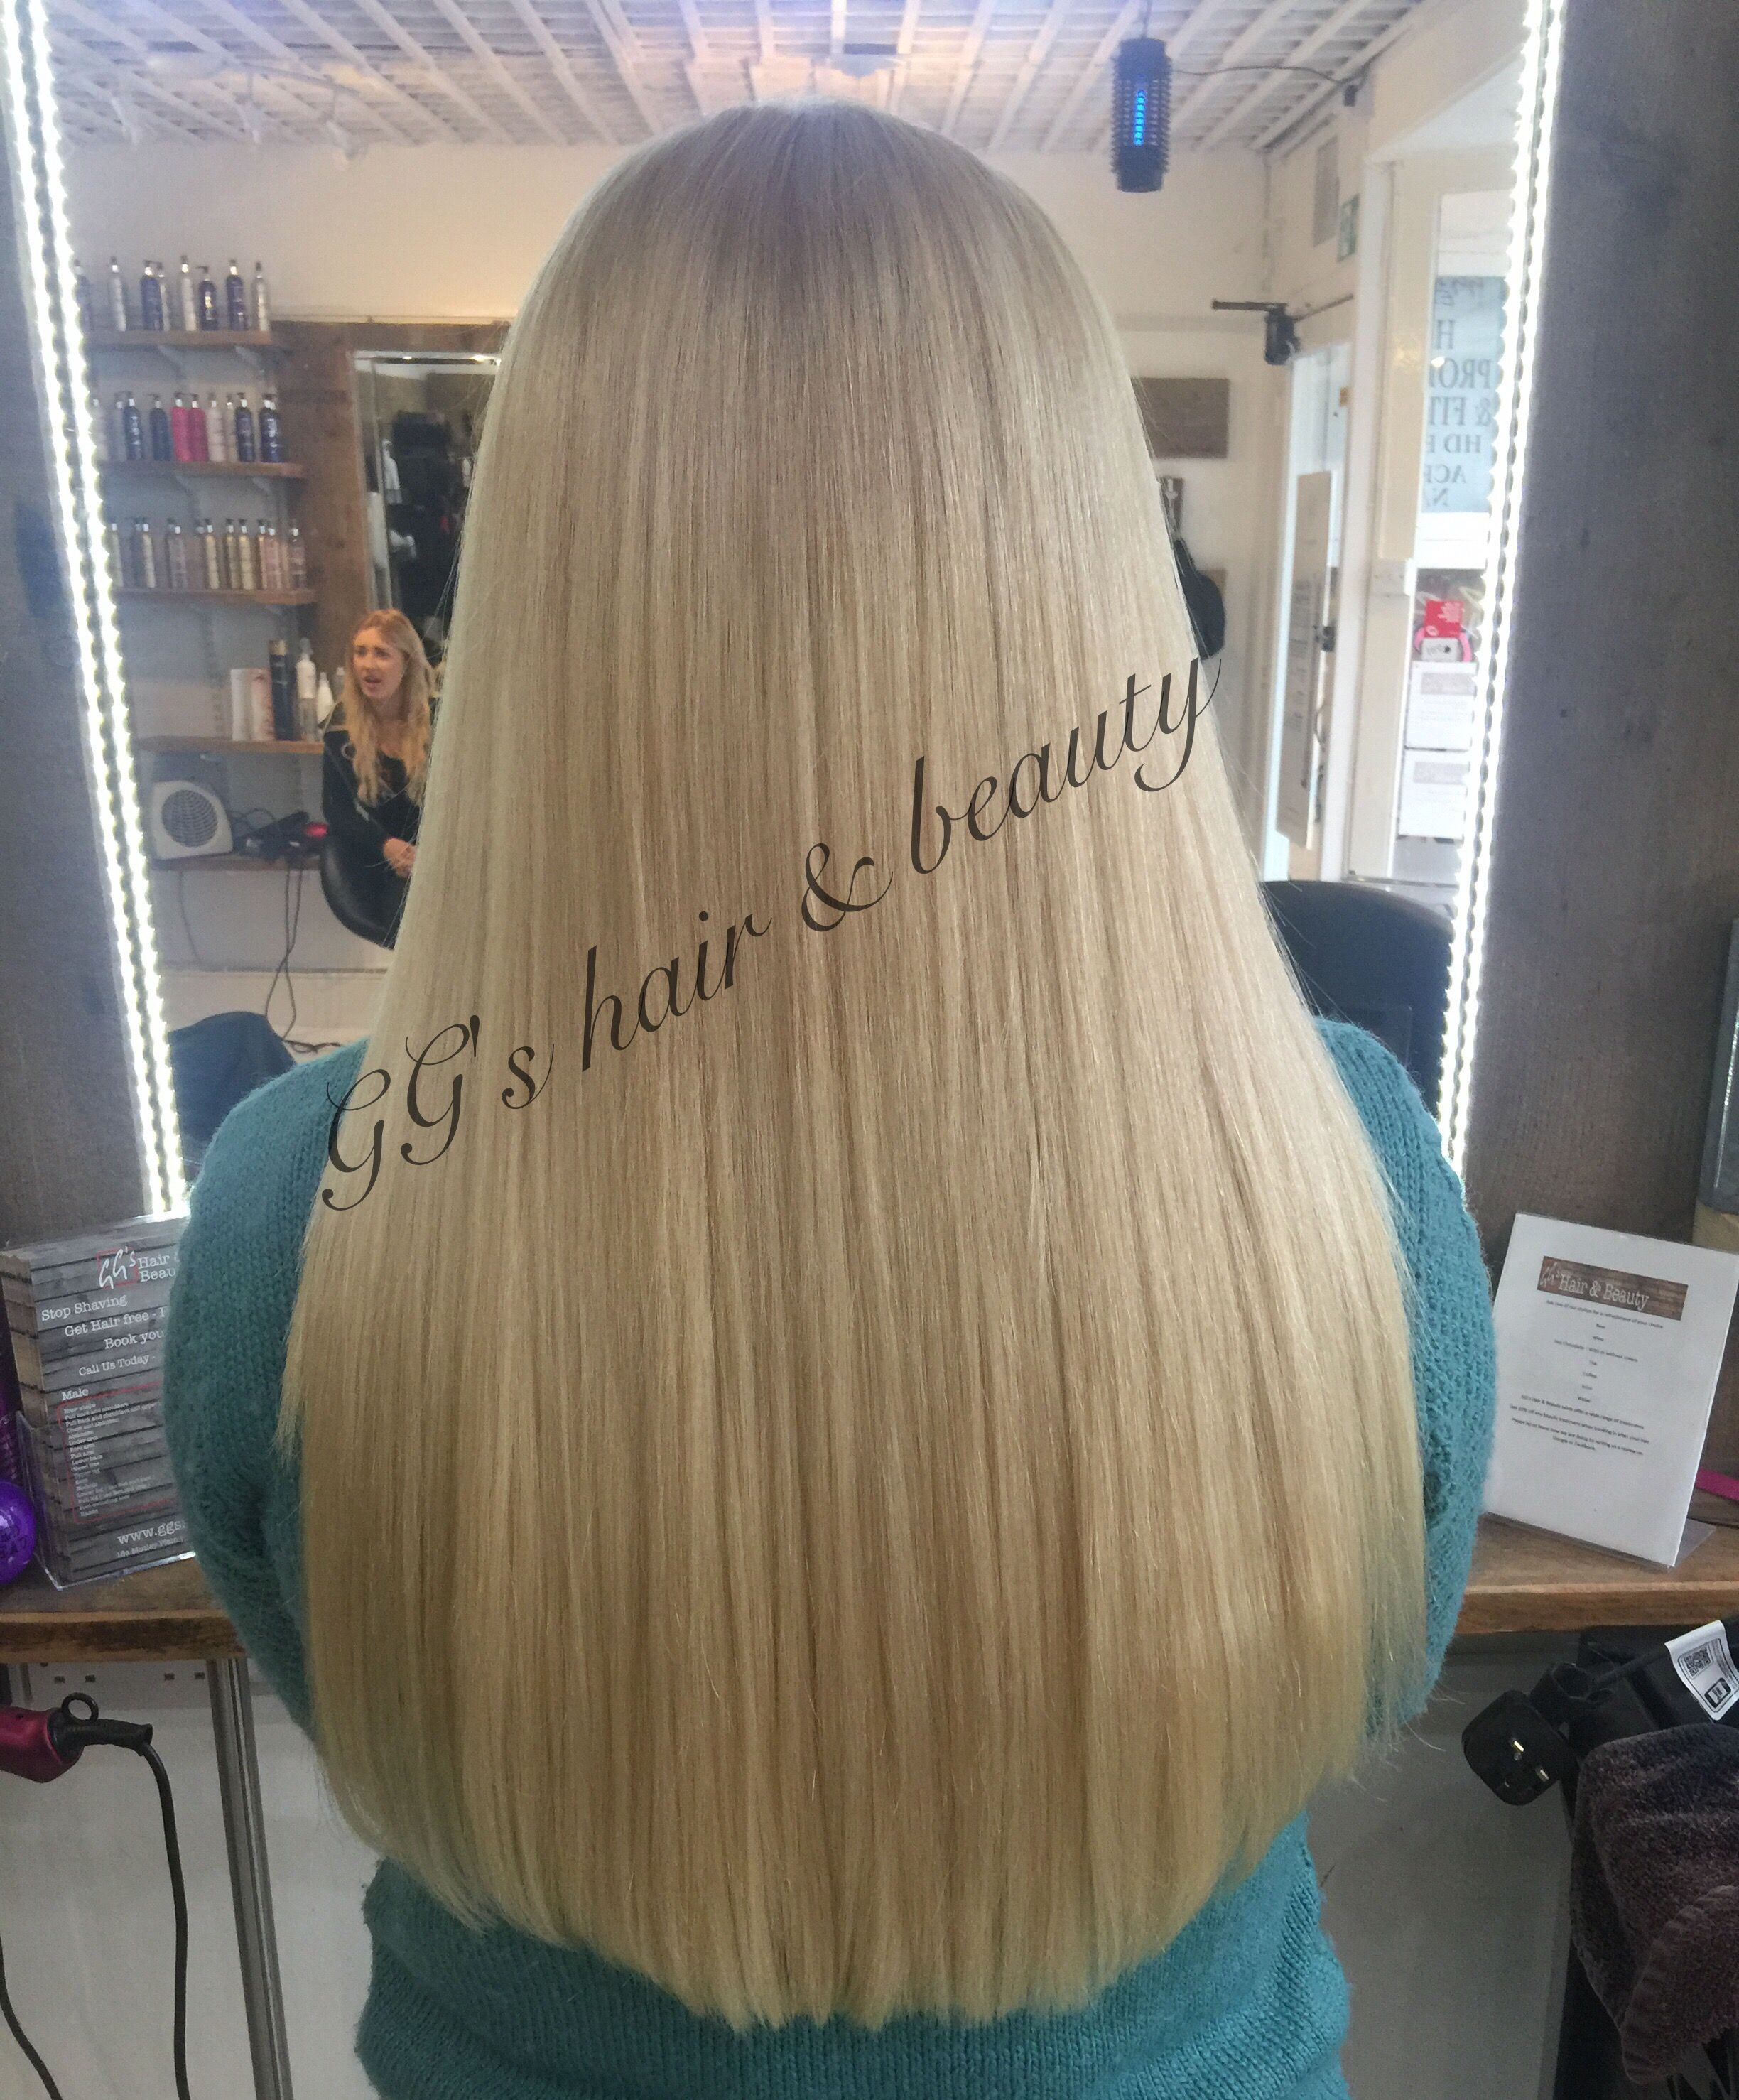 Another Gorgeous Flat Track Weave Fitted Today At Ggs Salon Adding